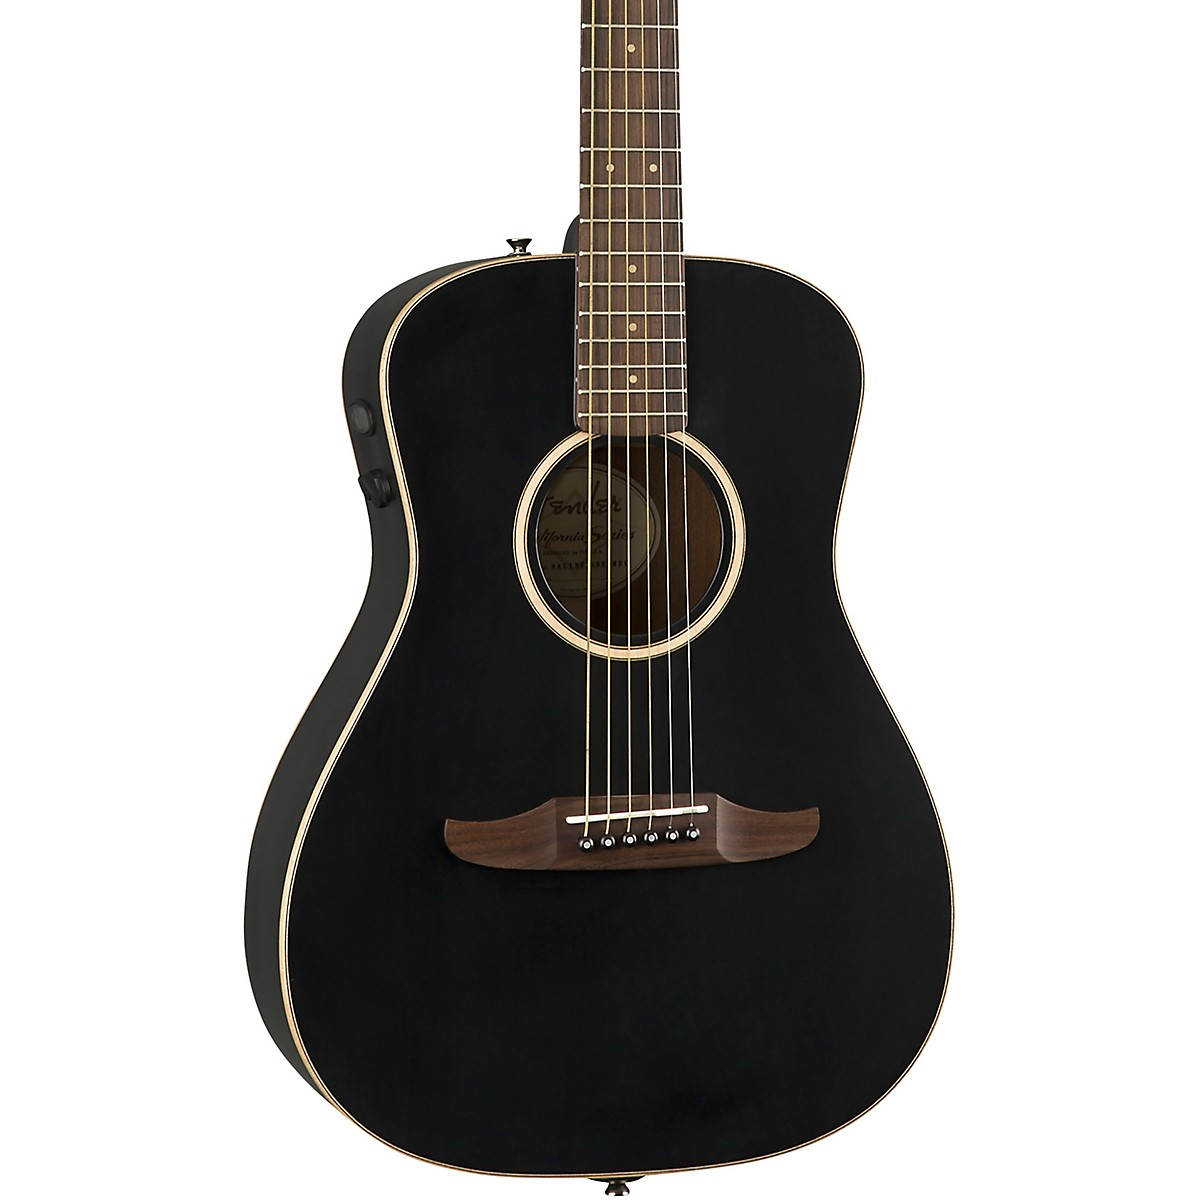 Fender California Malibu Special Acoustic-Electric Guitar